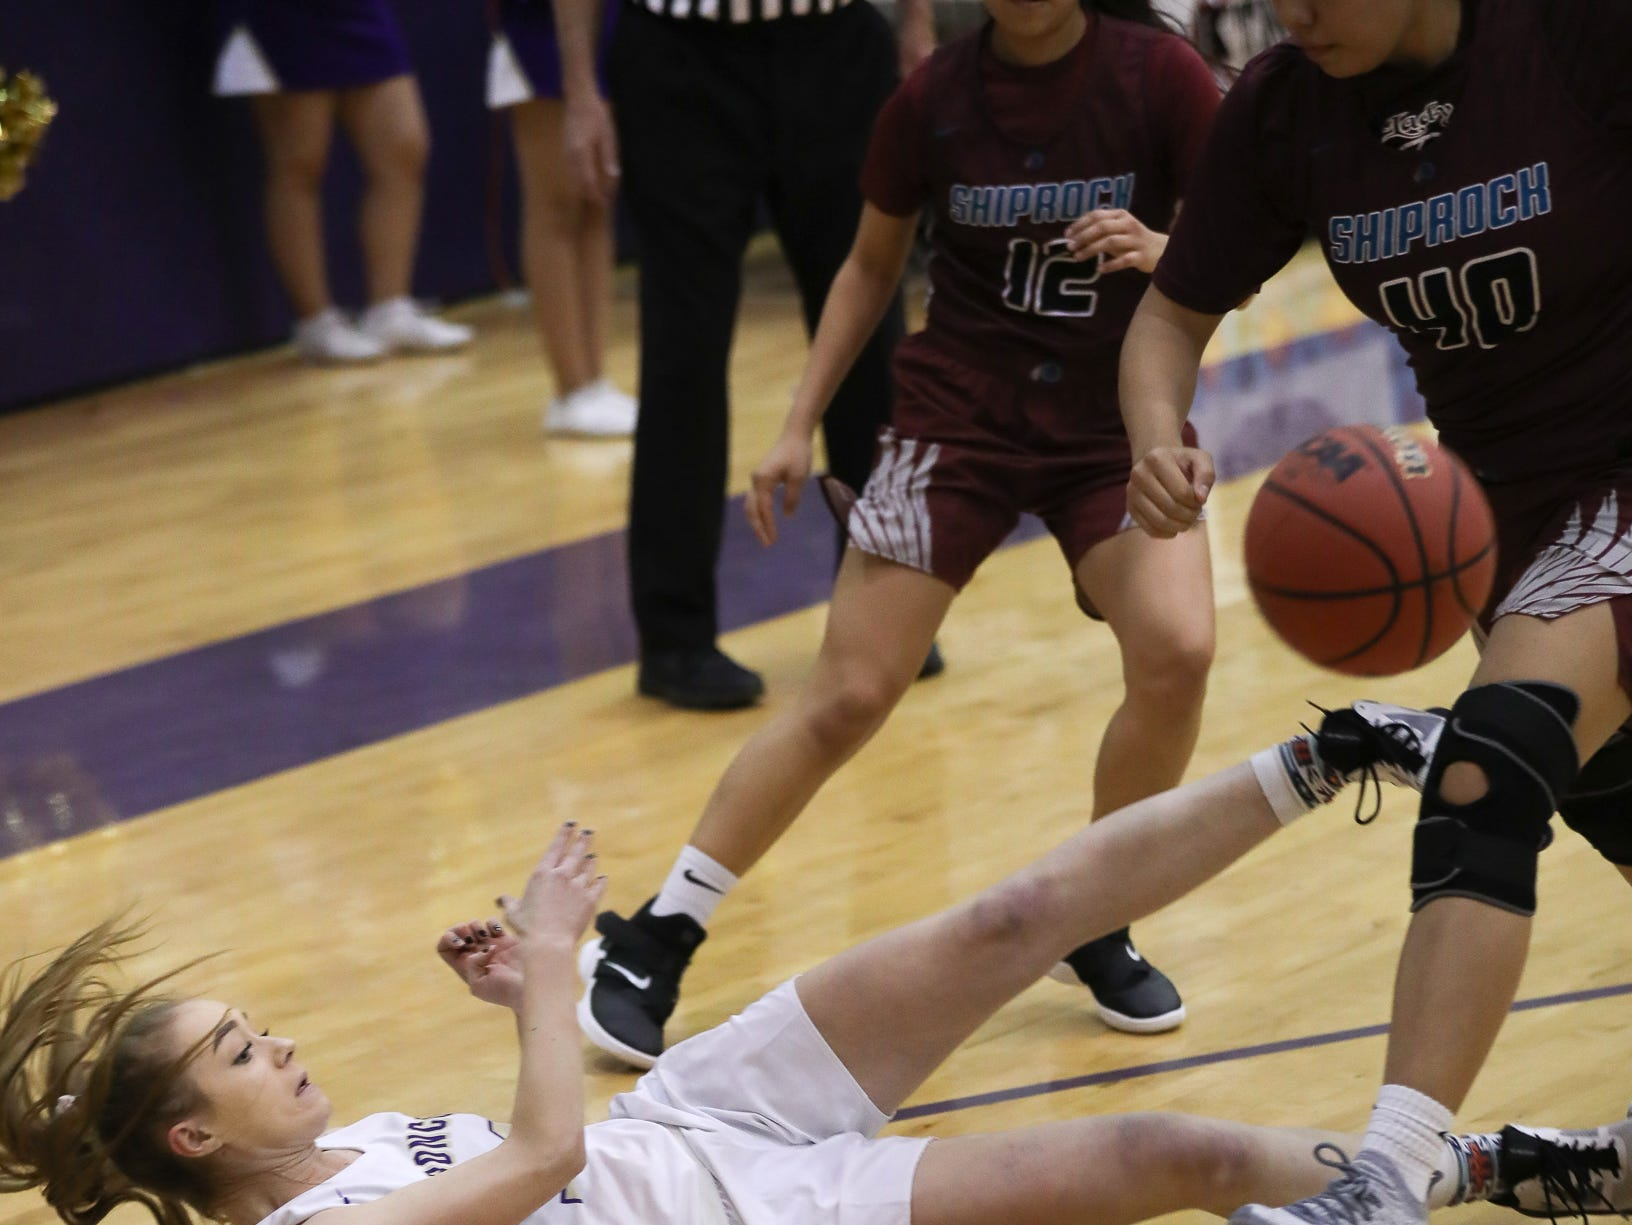 Kirtland Central's Jayden Guillory steals the ball from Shiprock's Kimora Tso (12) and Marielynn Lansing (40) during Friday's 4A playoff opener at Bronco Arena in Kirtland.